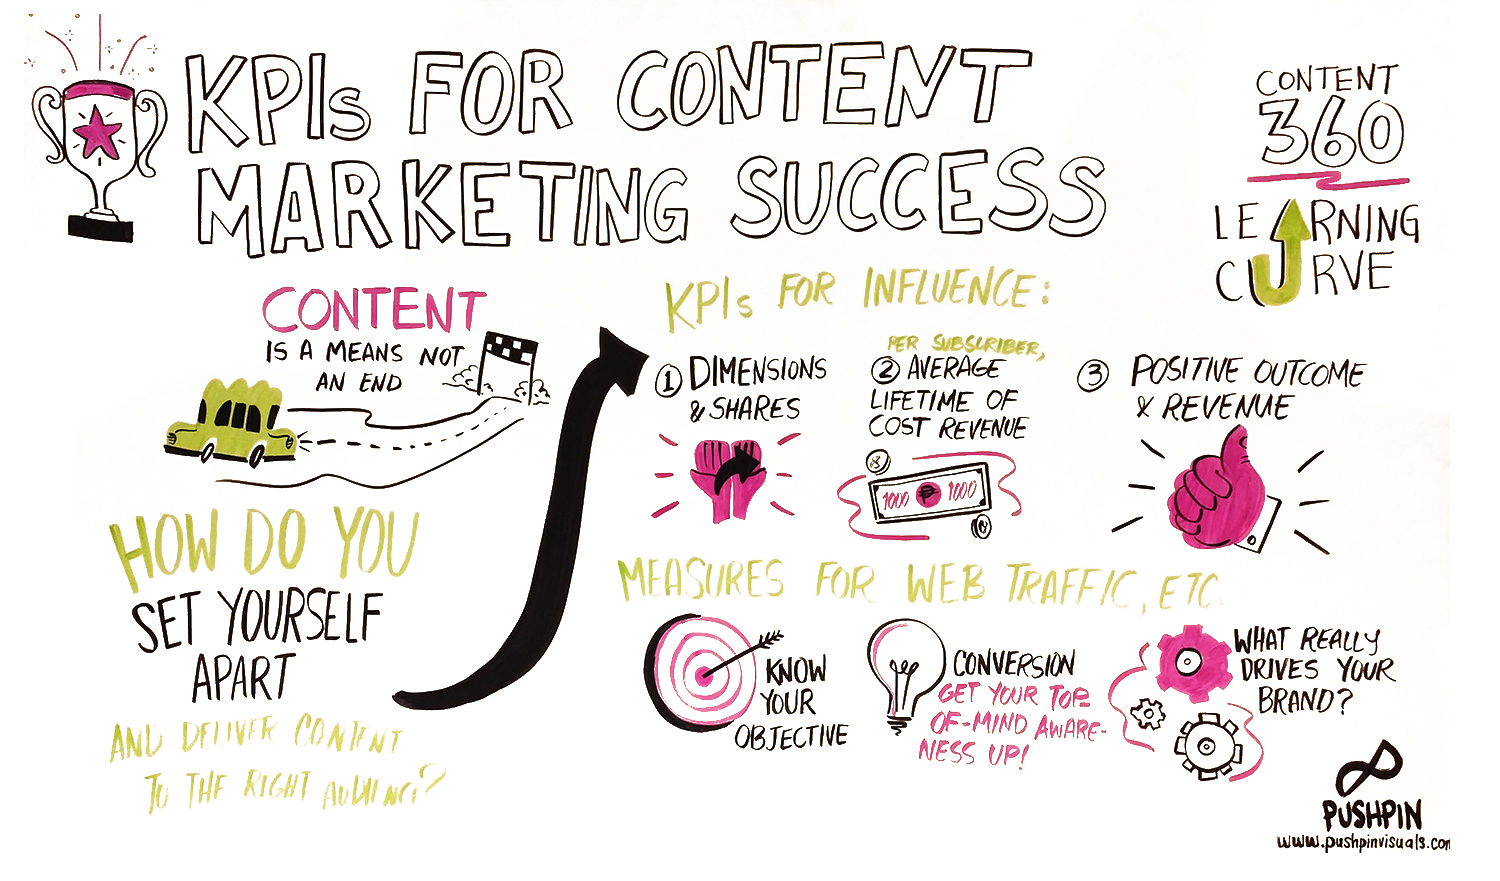 KPIs-for-Content-Marketing-Success